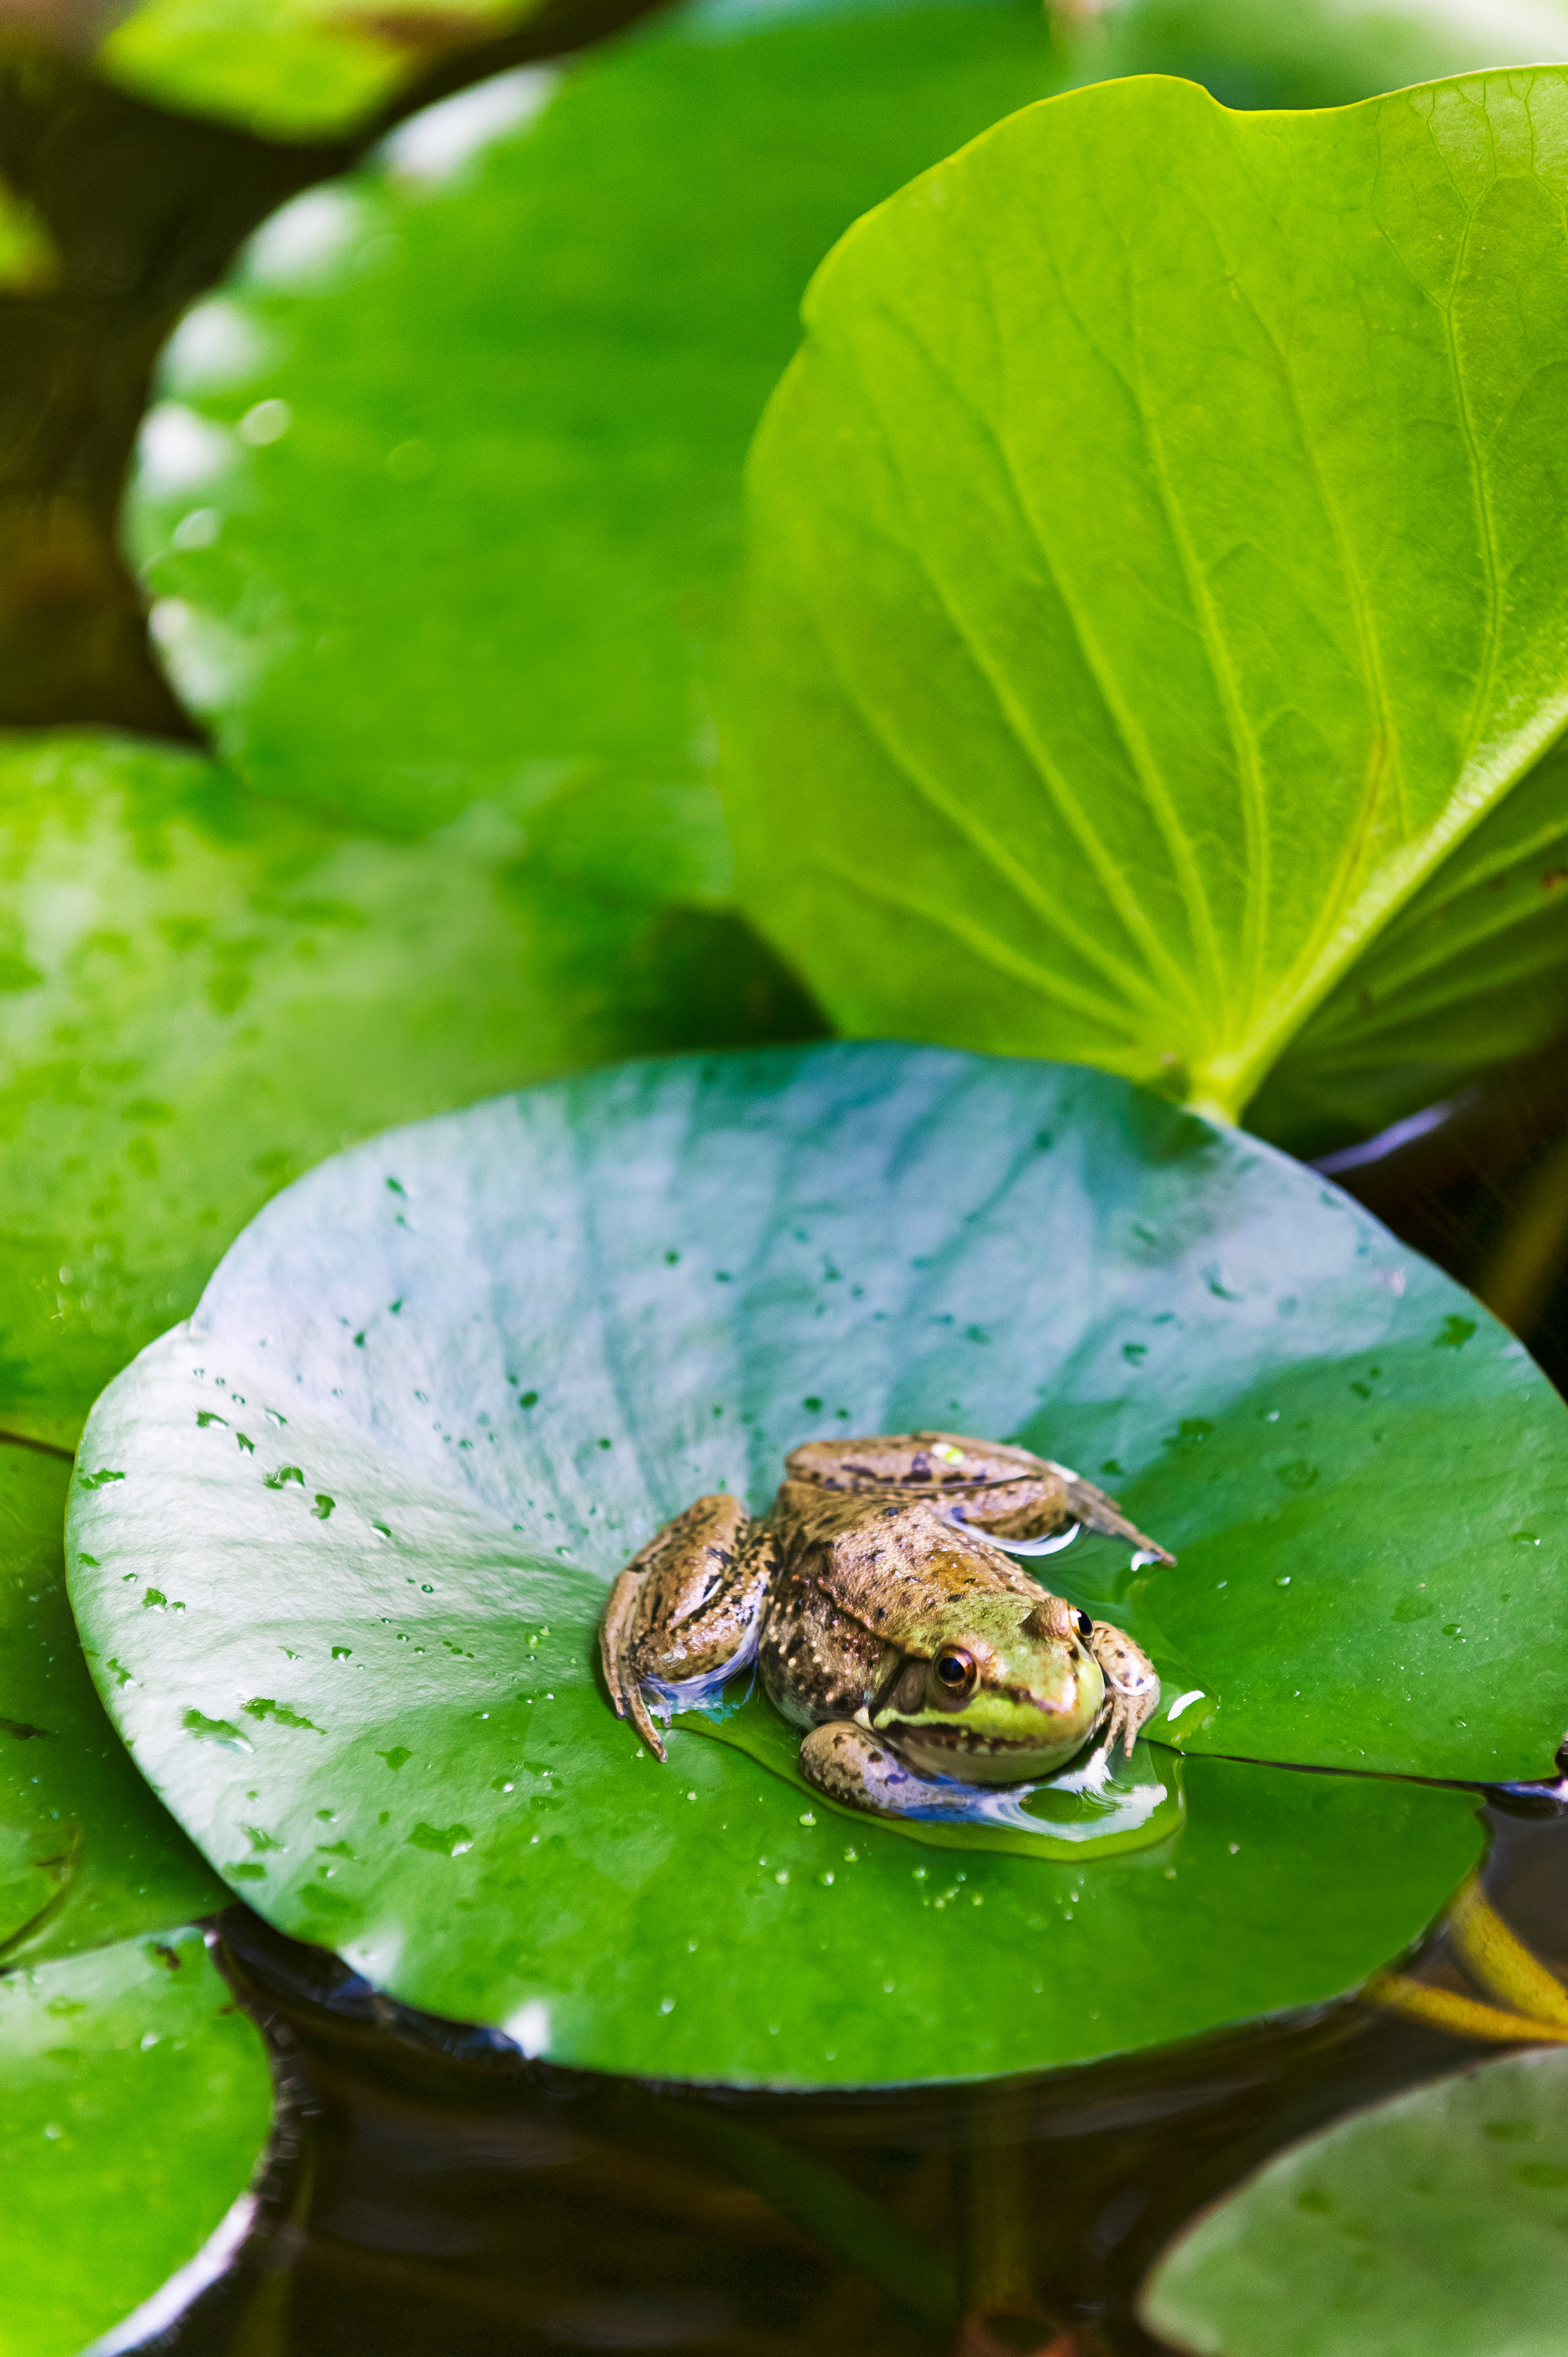 green frog on lily pad in water garden